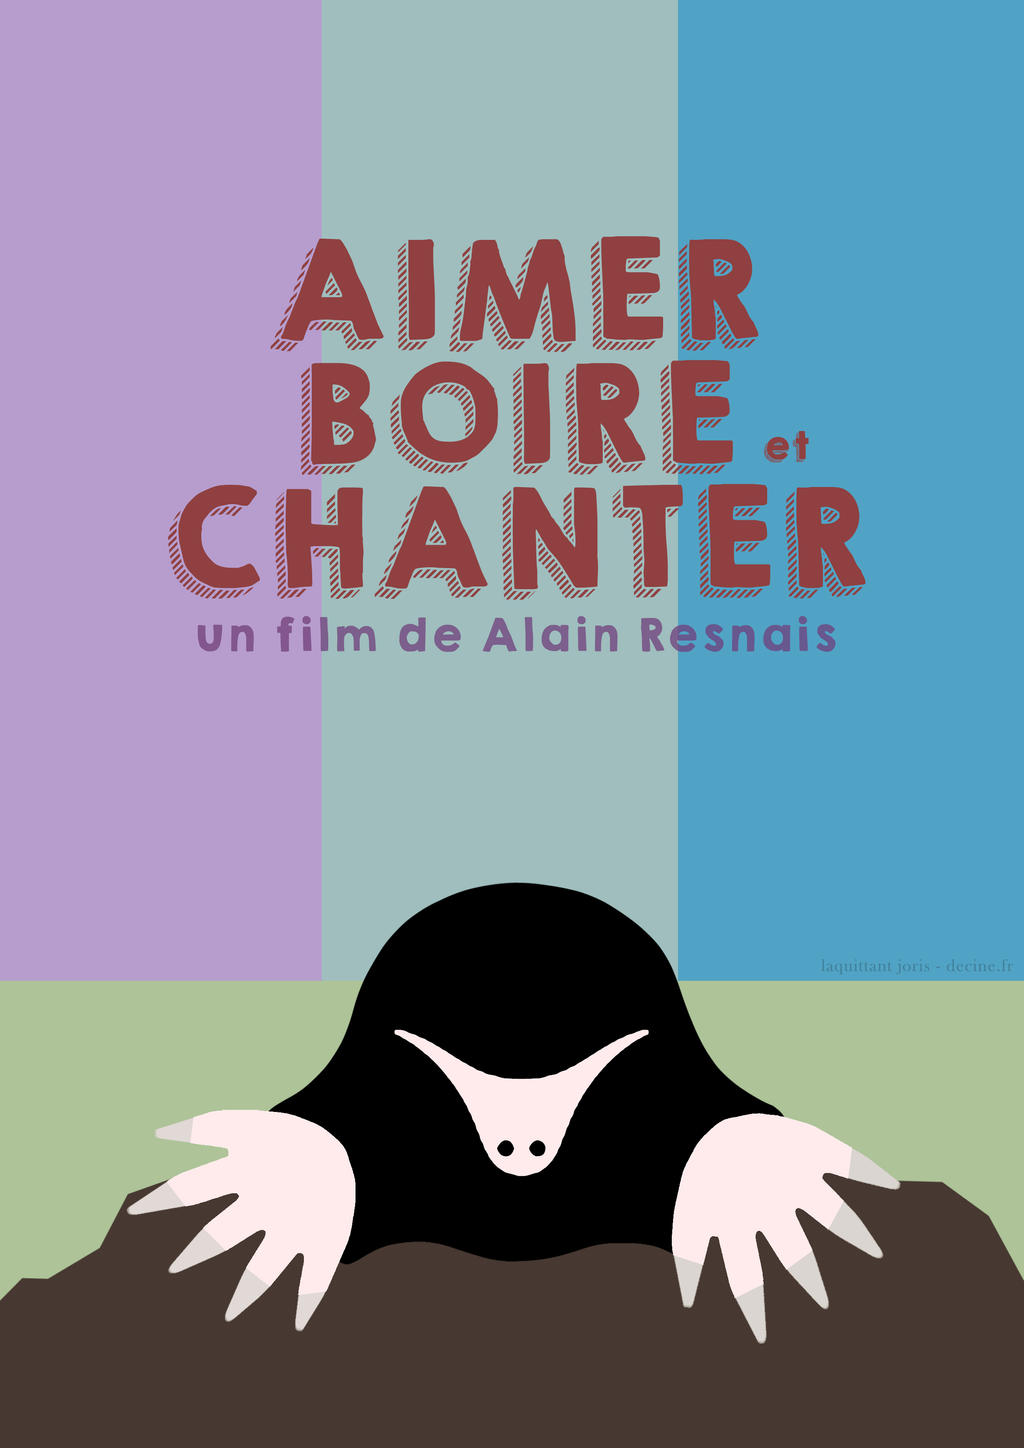 Aimer boire et chanter affiche minimaliste by for Affiche minimaliste